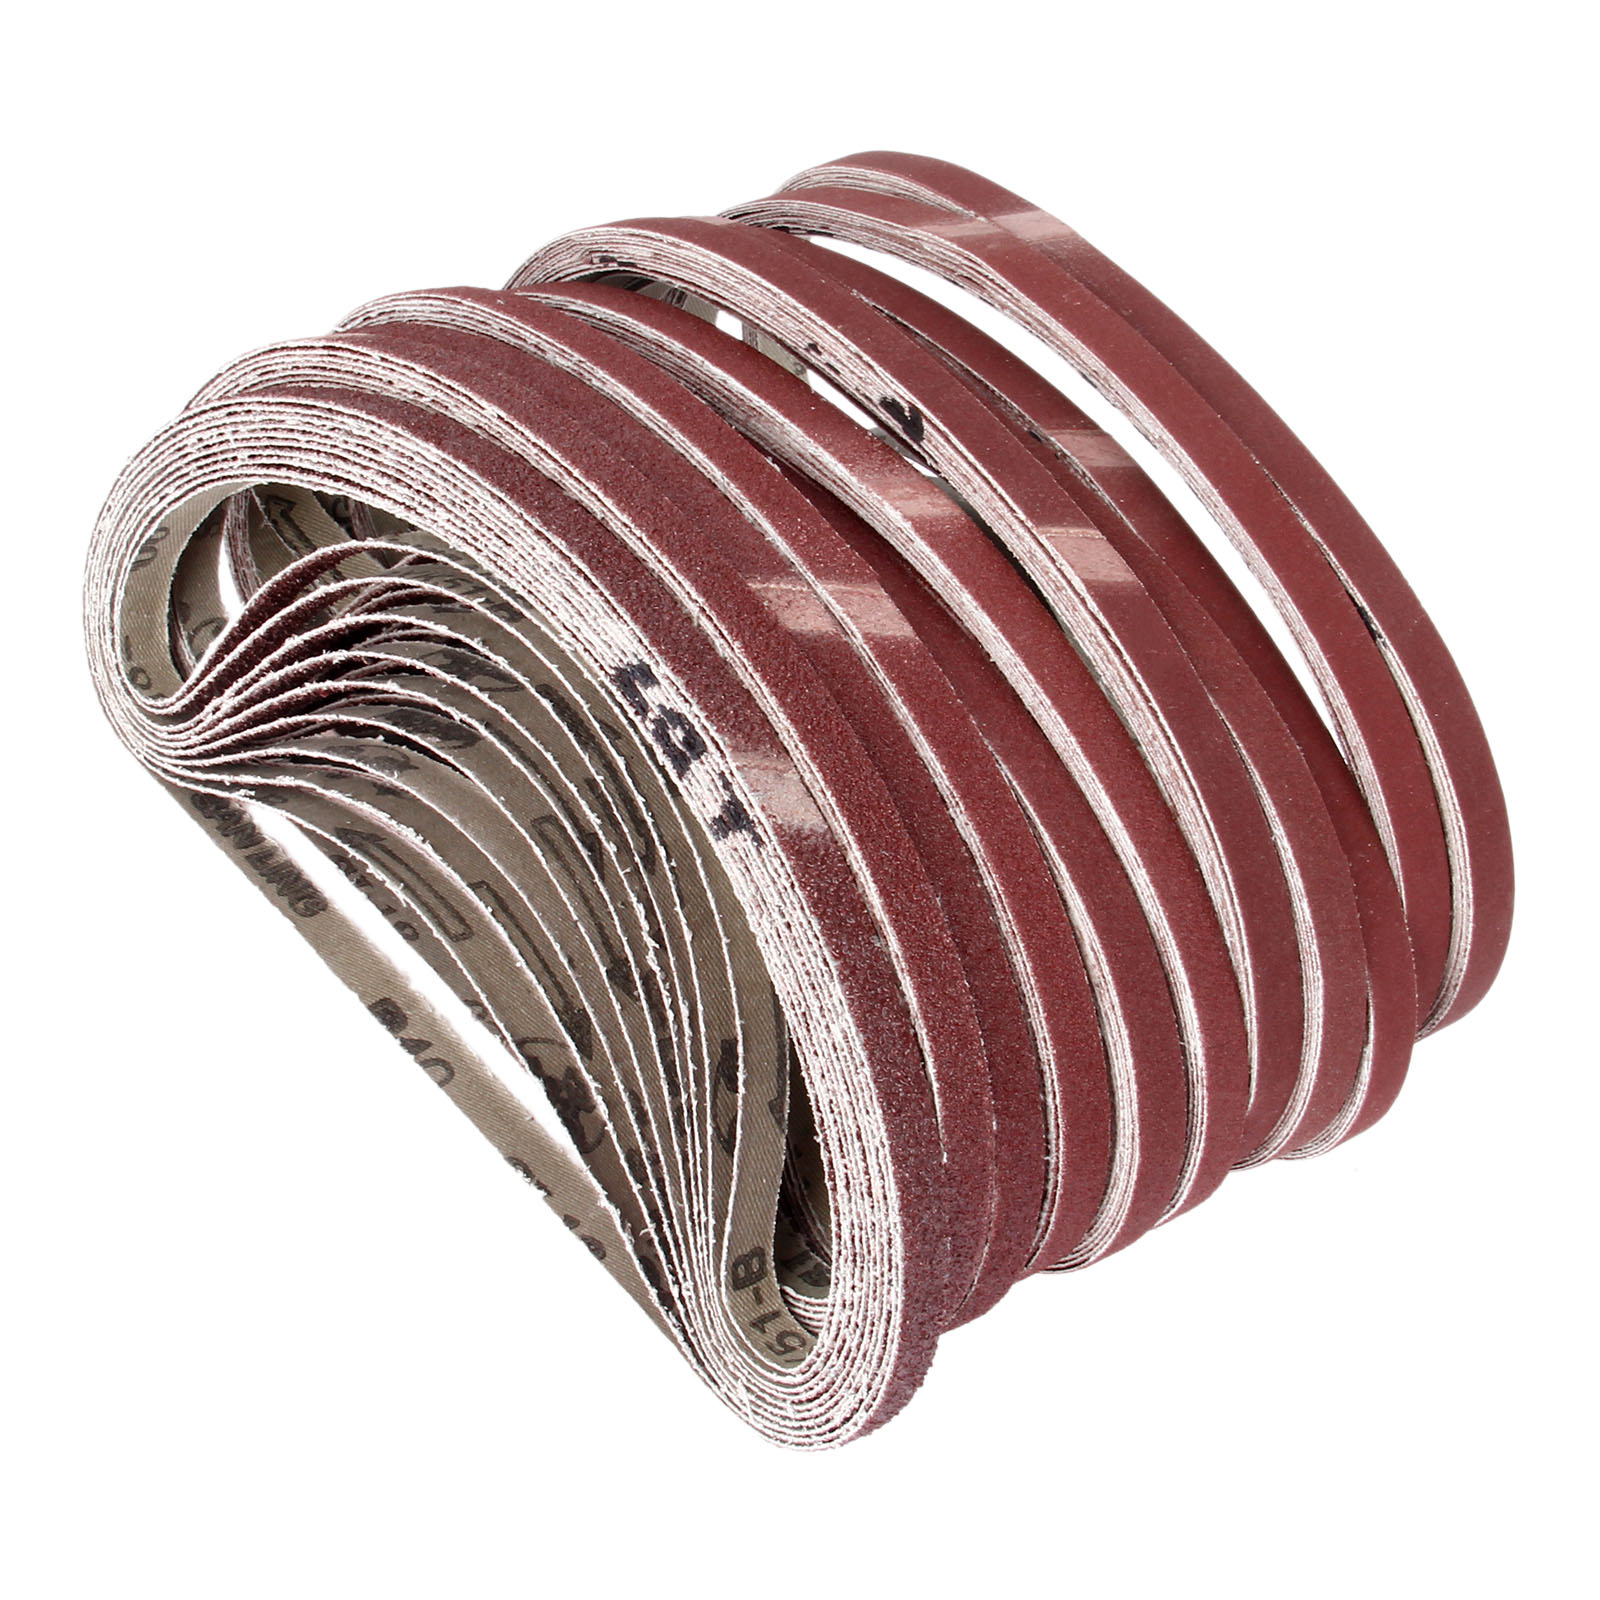 10Pcs 9*533mm Abrasive Sanding Belts Sanding Band 21*0.35inch Sanding Screen With Grit 40 To 600 Soft Cloth For Belt Sander